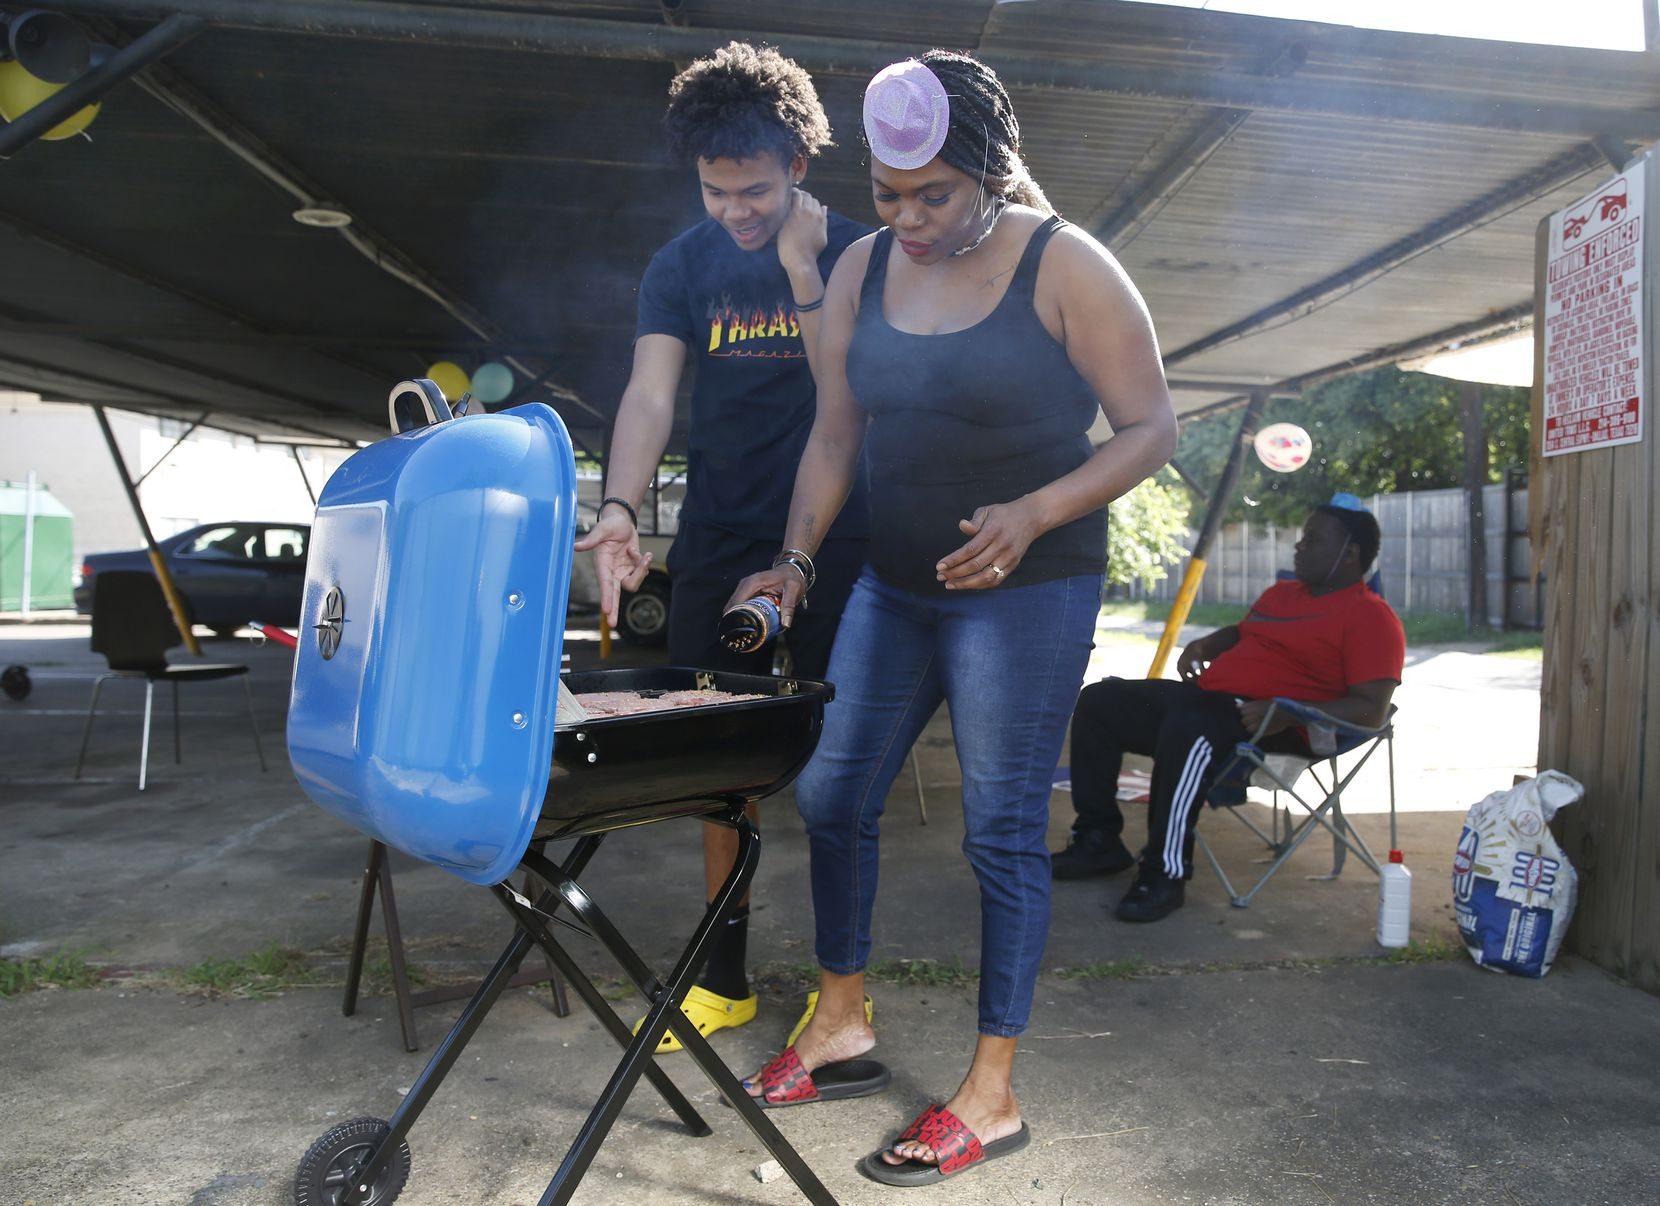 Staceanne Sykes (right) and her son Kenneth Sykes, 16, tend to burgers on the grill as Kenneth's friend Tyren Briggs, 16, sits in the background during a birthday celebration for her youngest son Kaden, 11, at her apartment building's parking lot in Dallas.  Sykes was driving for Postmates and Instacart but stopped because she didn't want to take the risk of bringing home the coronavirus. As a disabled veteran, she gets a monthly stipend, but it doesn't pay for everything.